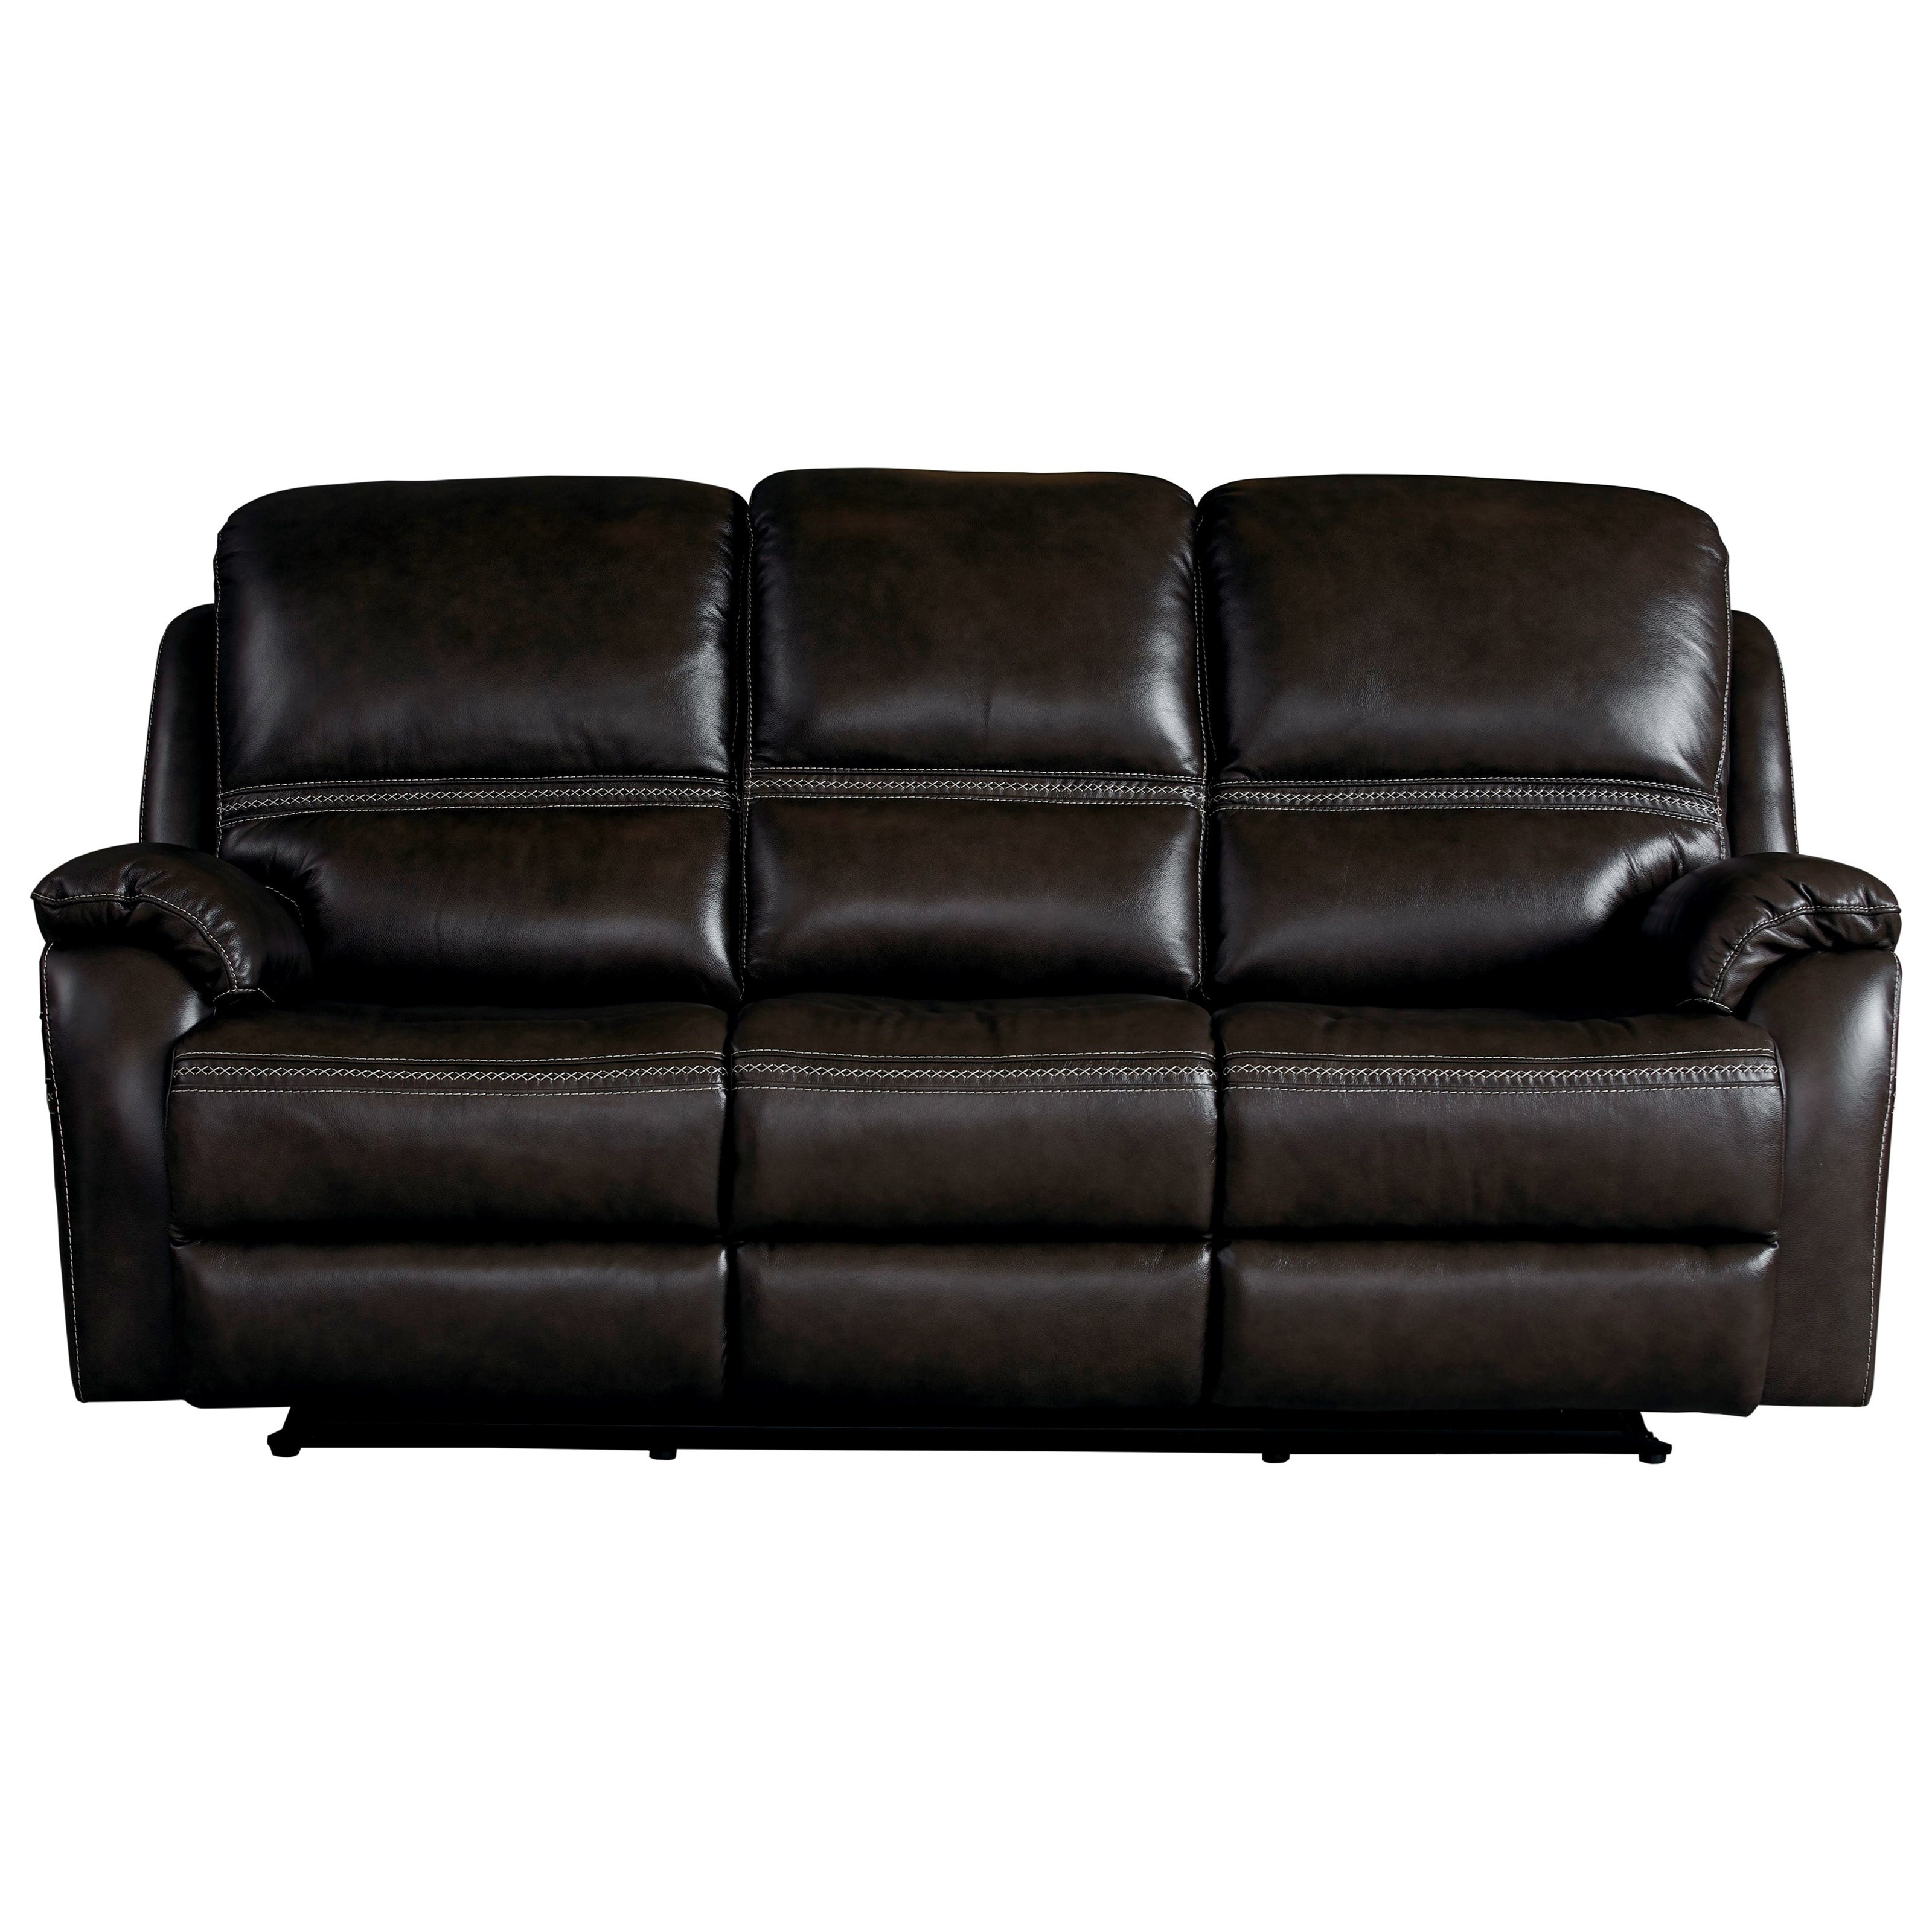 Williams - Club Level by Bassett Power Reclining Sofa by Bassett at Bassett of Cool Springs